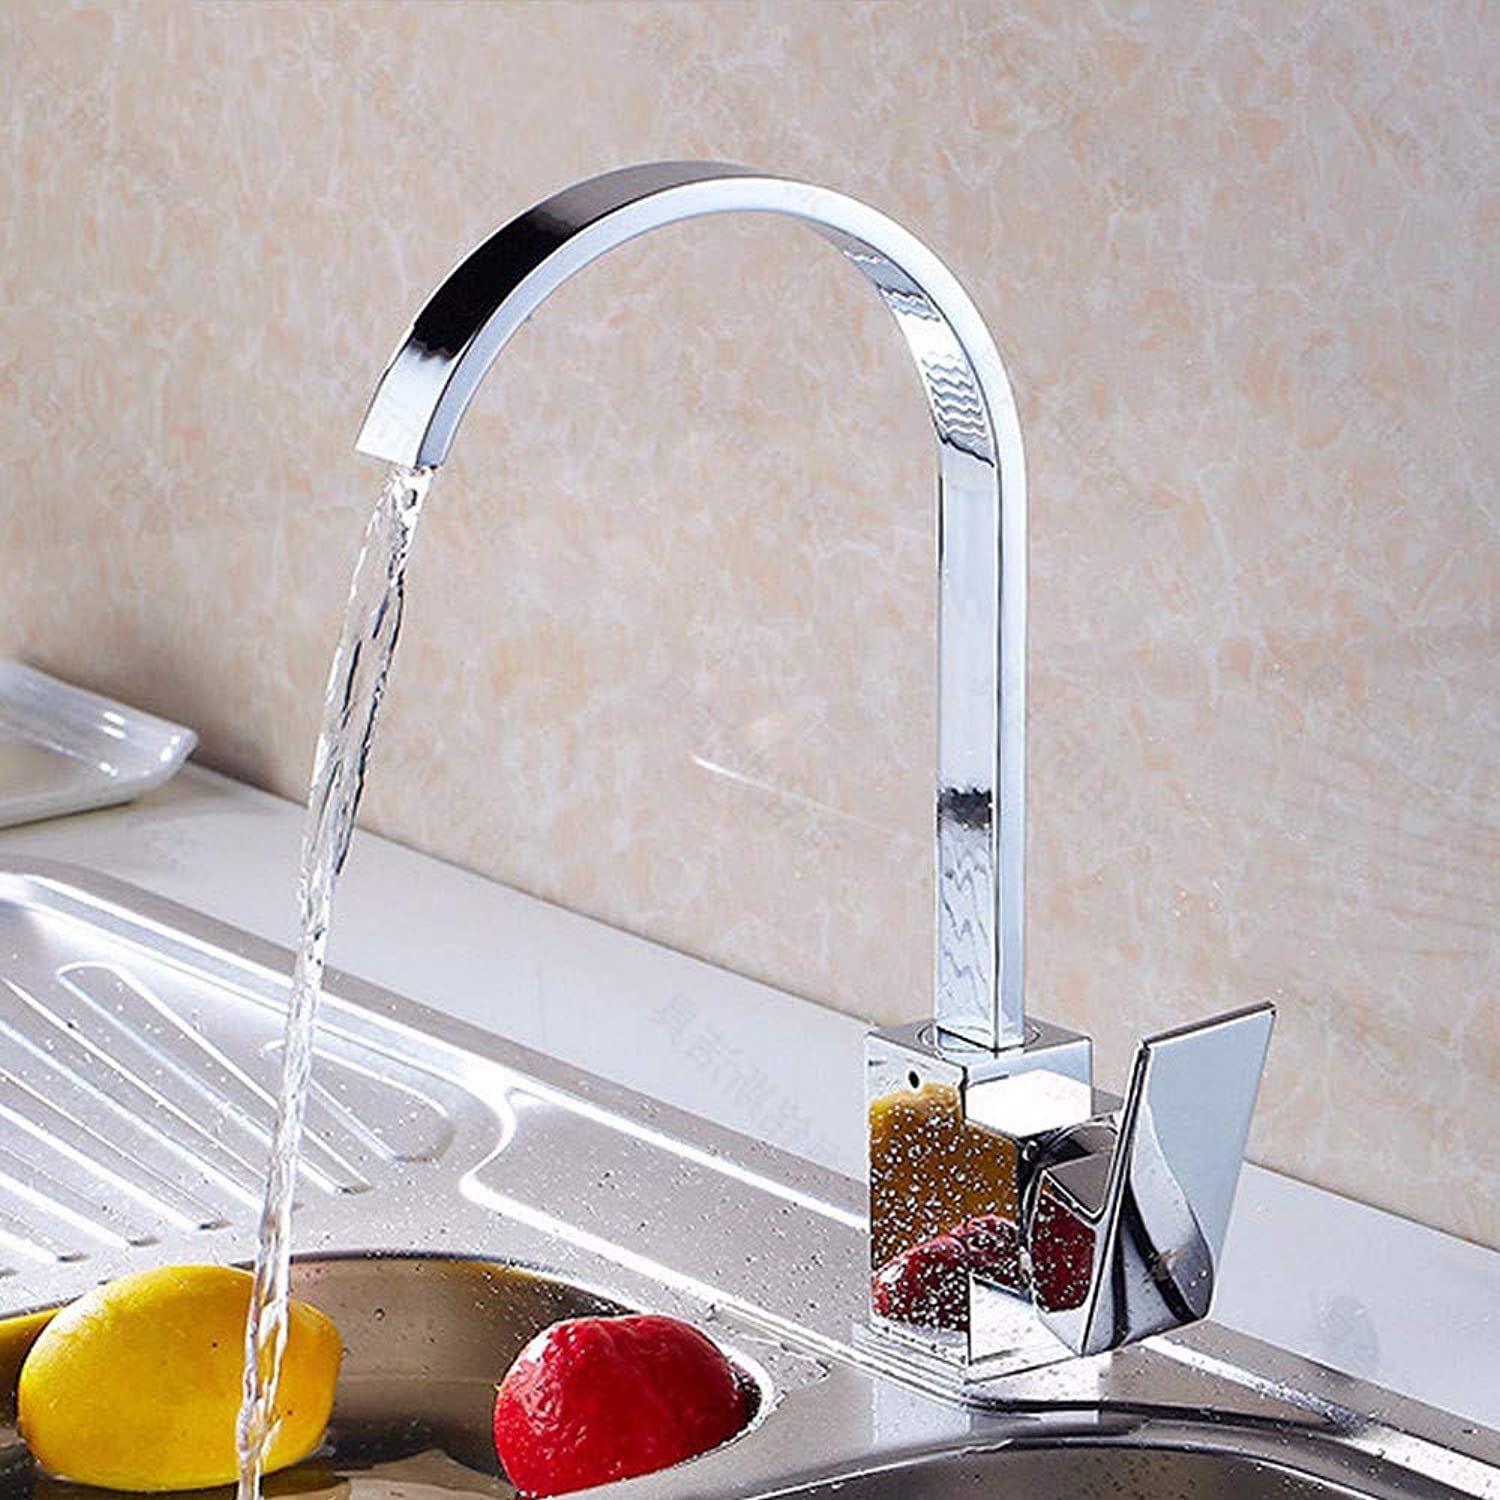 Kitchen Taps European Style Retro Single Handle redating Quartet Kitchen Faucet, Hot and Cold Mixing Kitchen Sink Faucet Copper(Plating),F